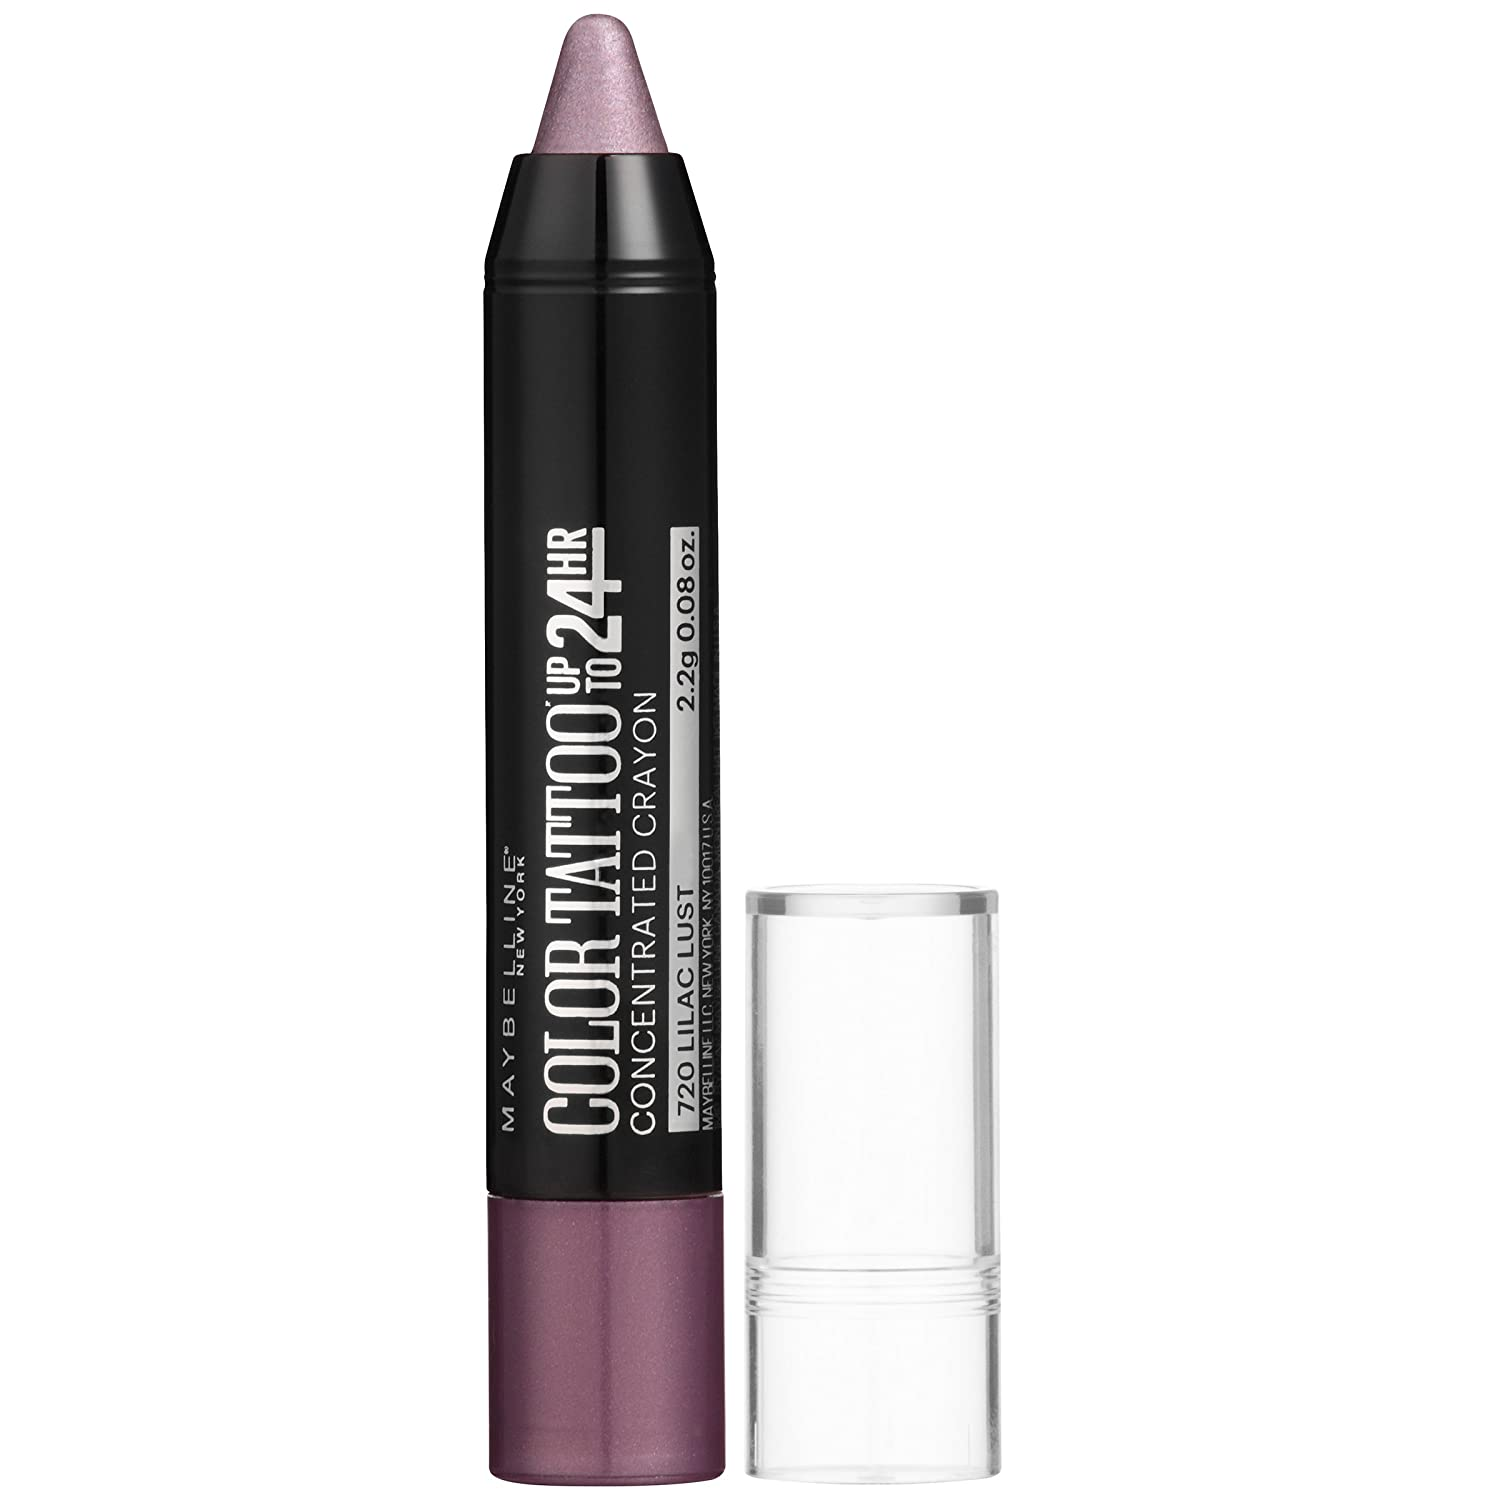 Maybelline New York Eyestudio Color Tattoo Concentrated Crayon Eye Color, Lilac Lust, 0.08 Ounce